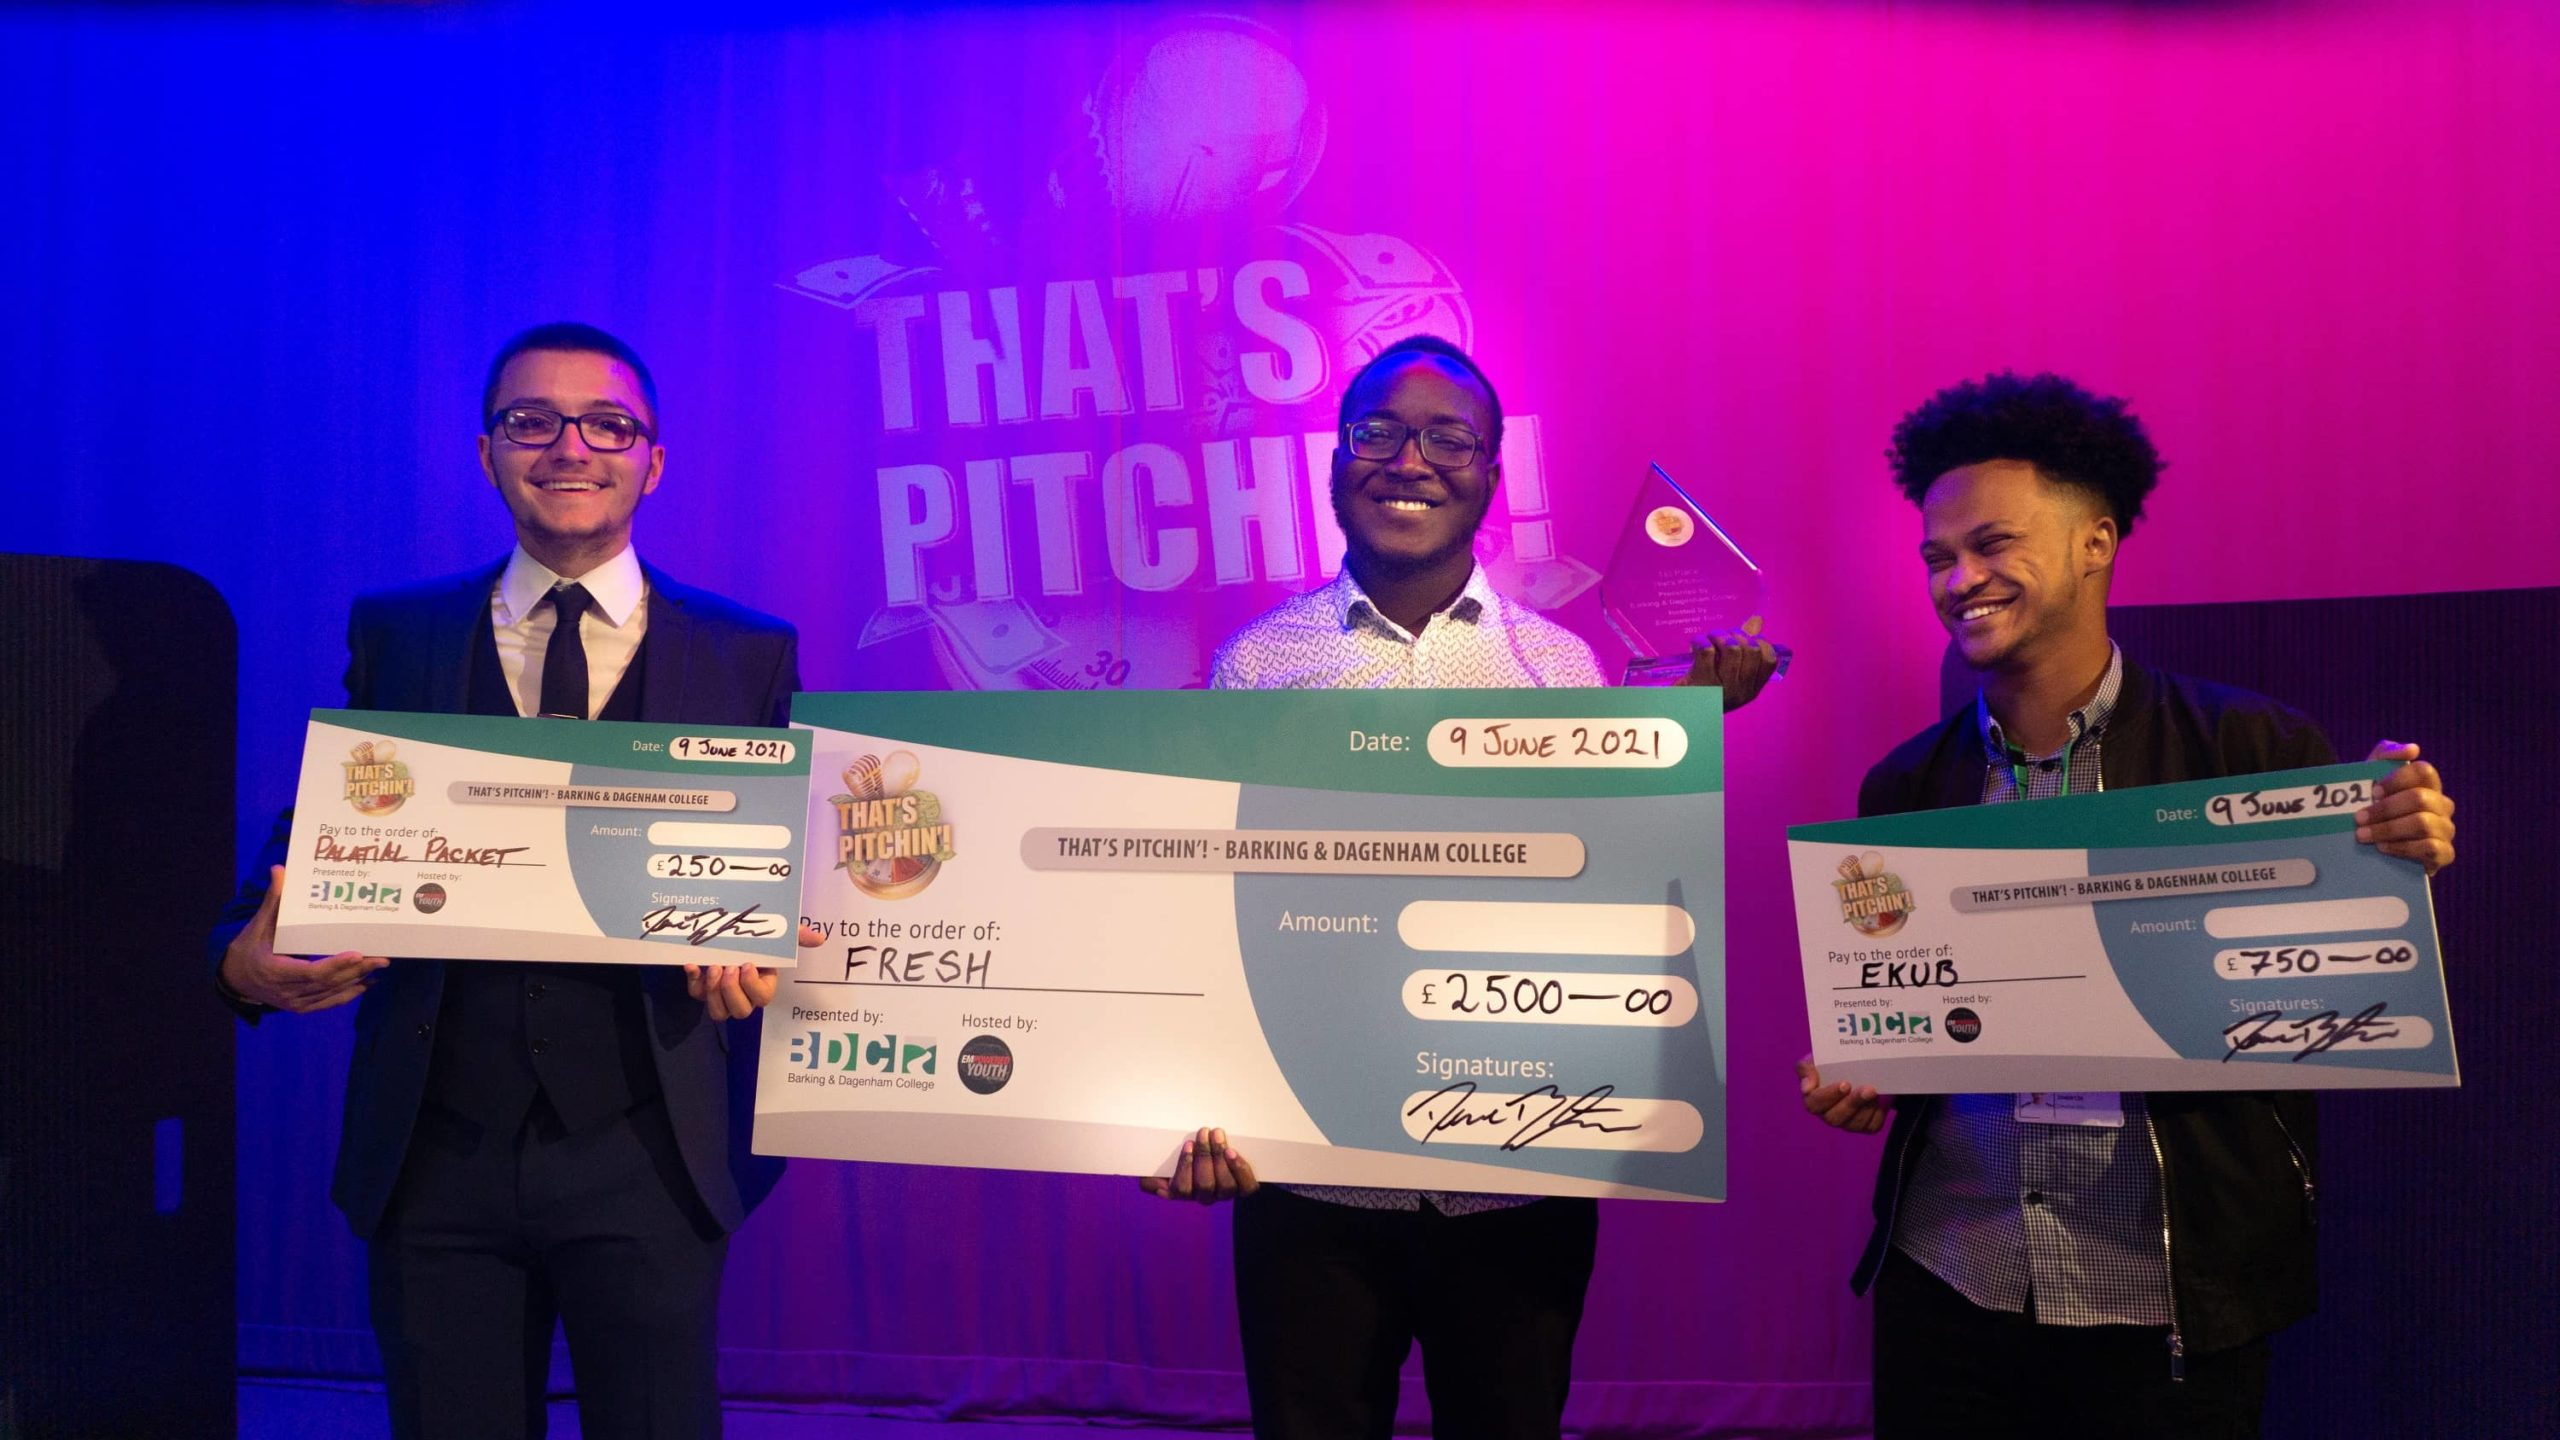 'Fresh' business idea wins £5000 in prizes